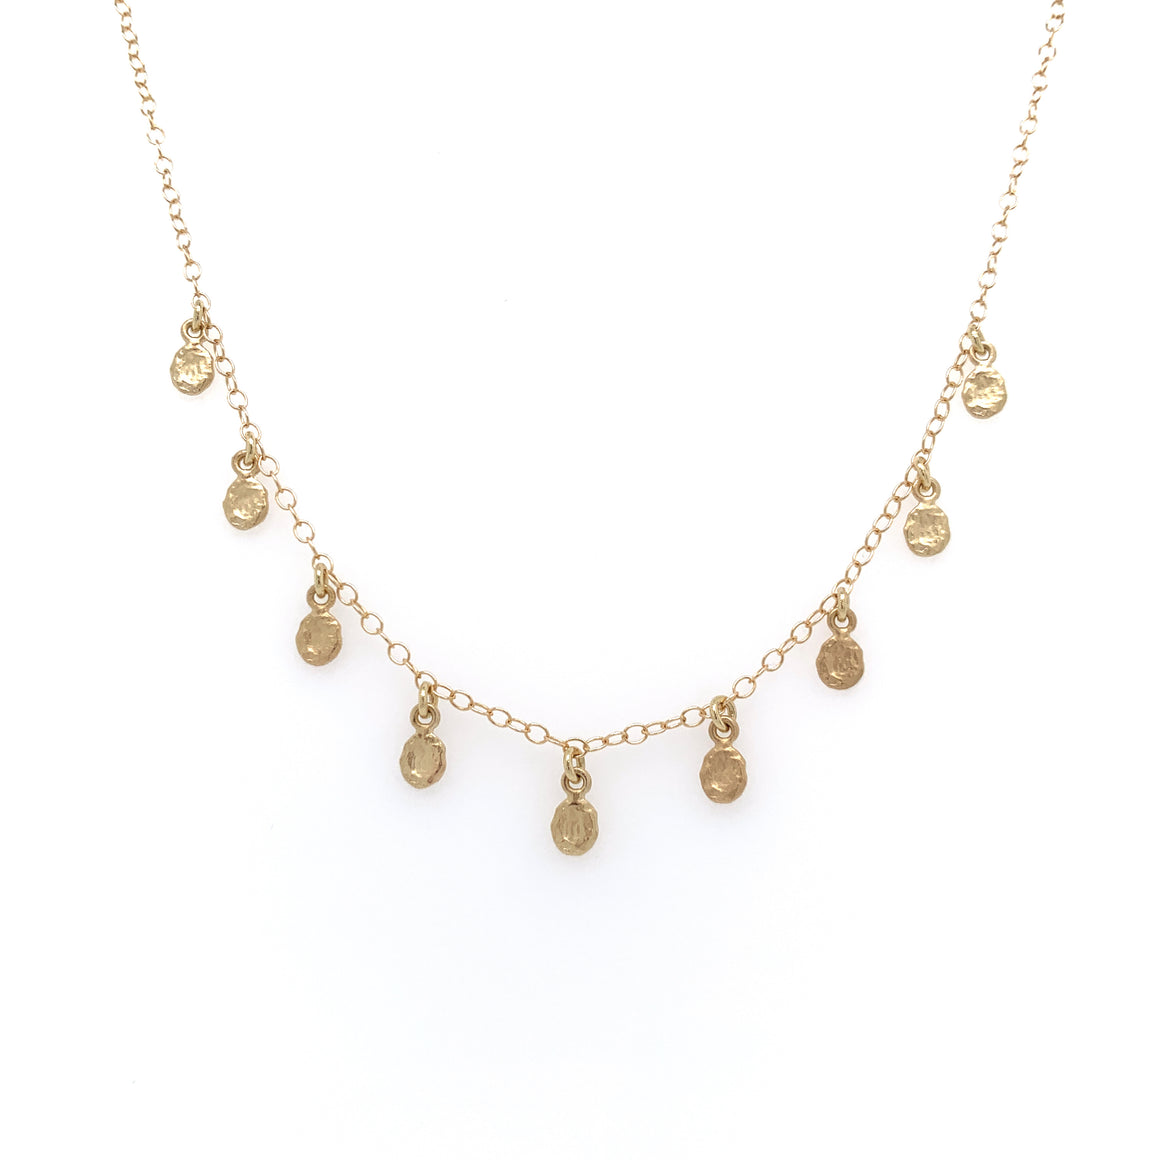 14k 9 Golden Flakes Necklace